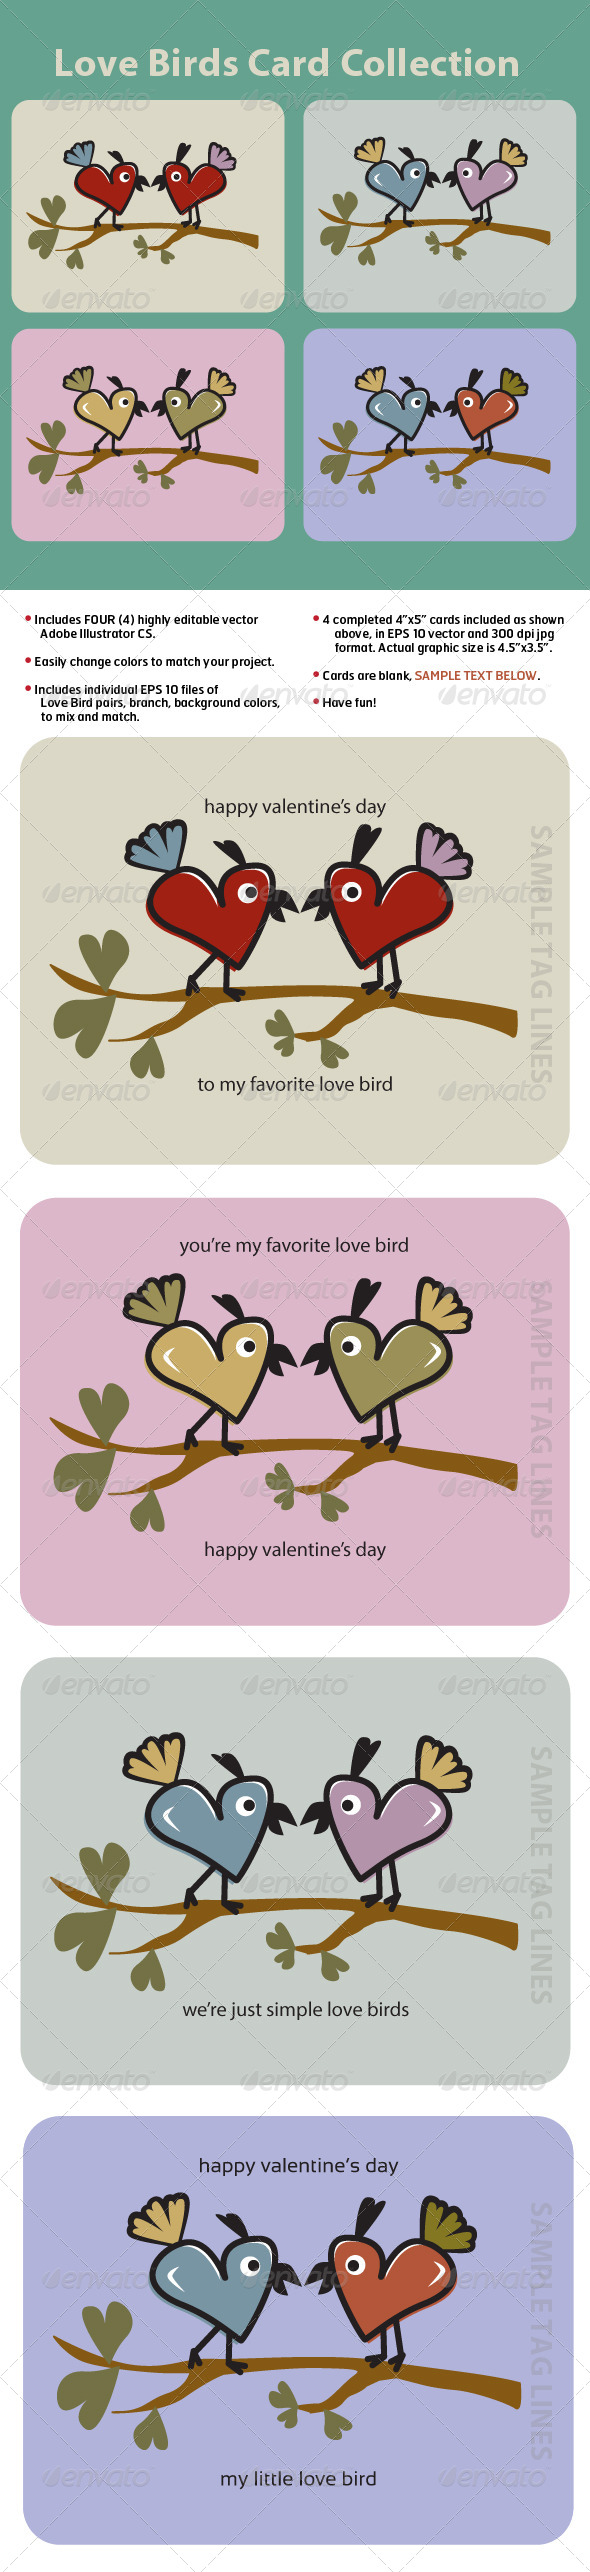 GraphicRiver Love Birds Card Collection 6245266